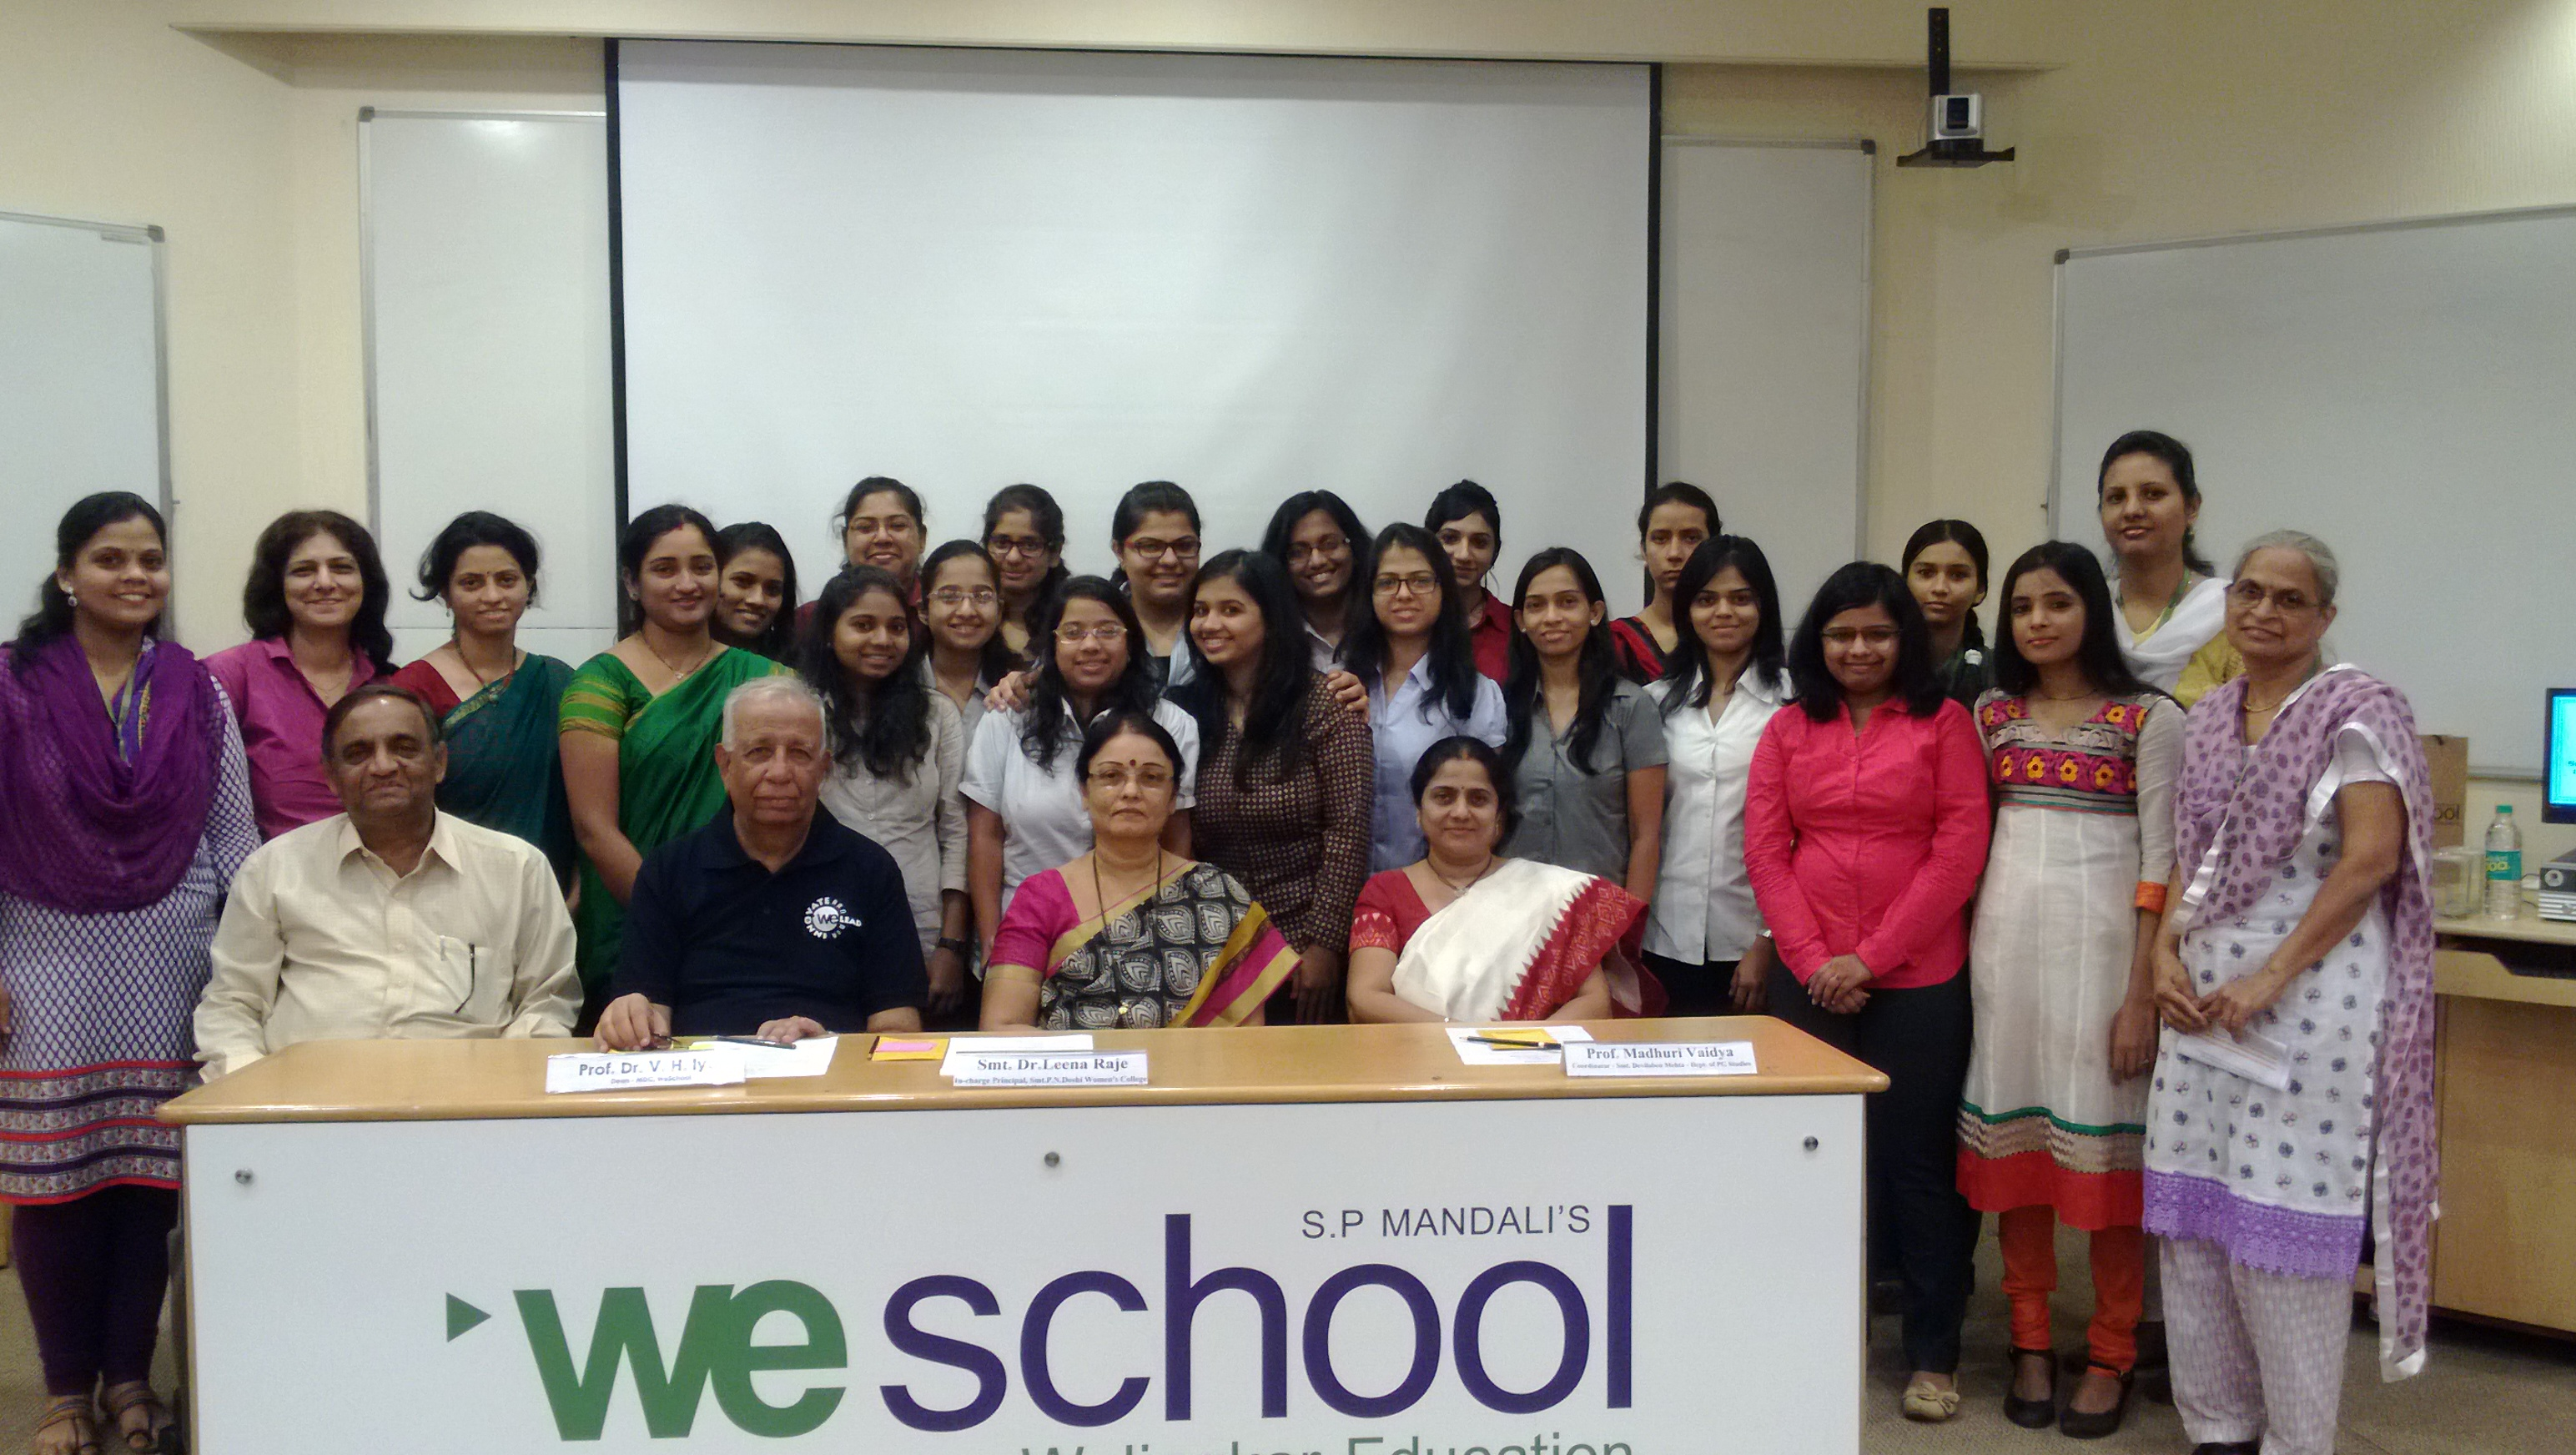 Psychologists learn all about industrial relations and labour laws at WeSchool